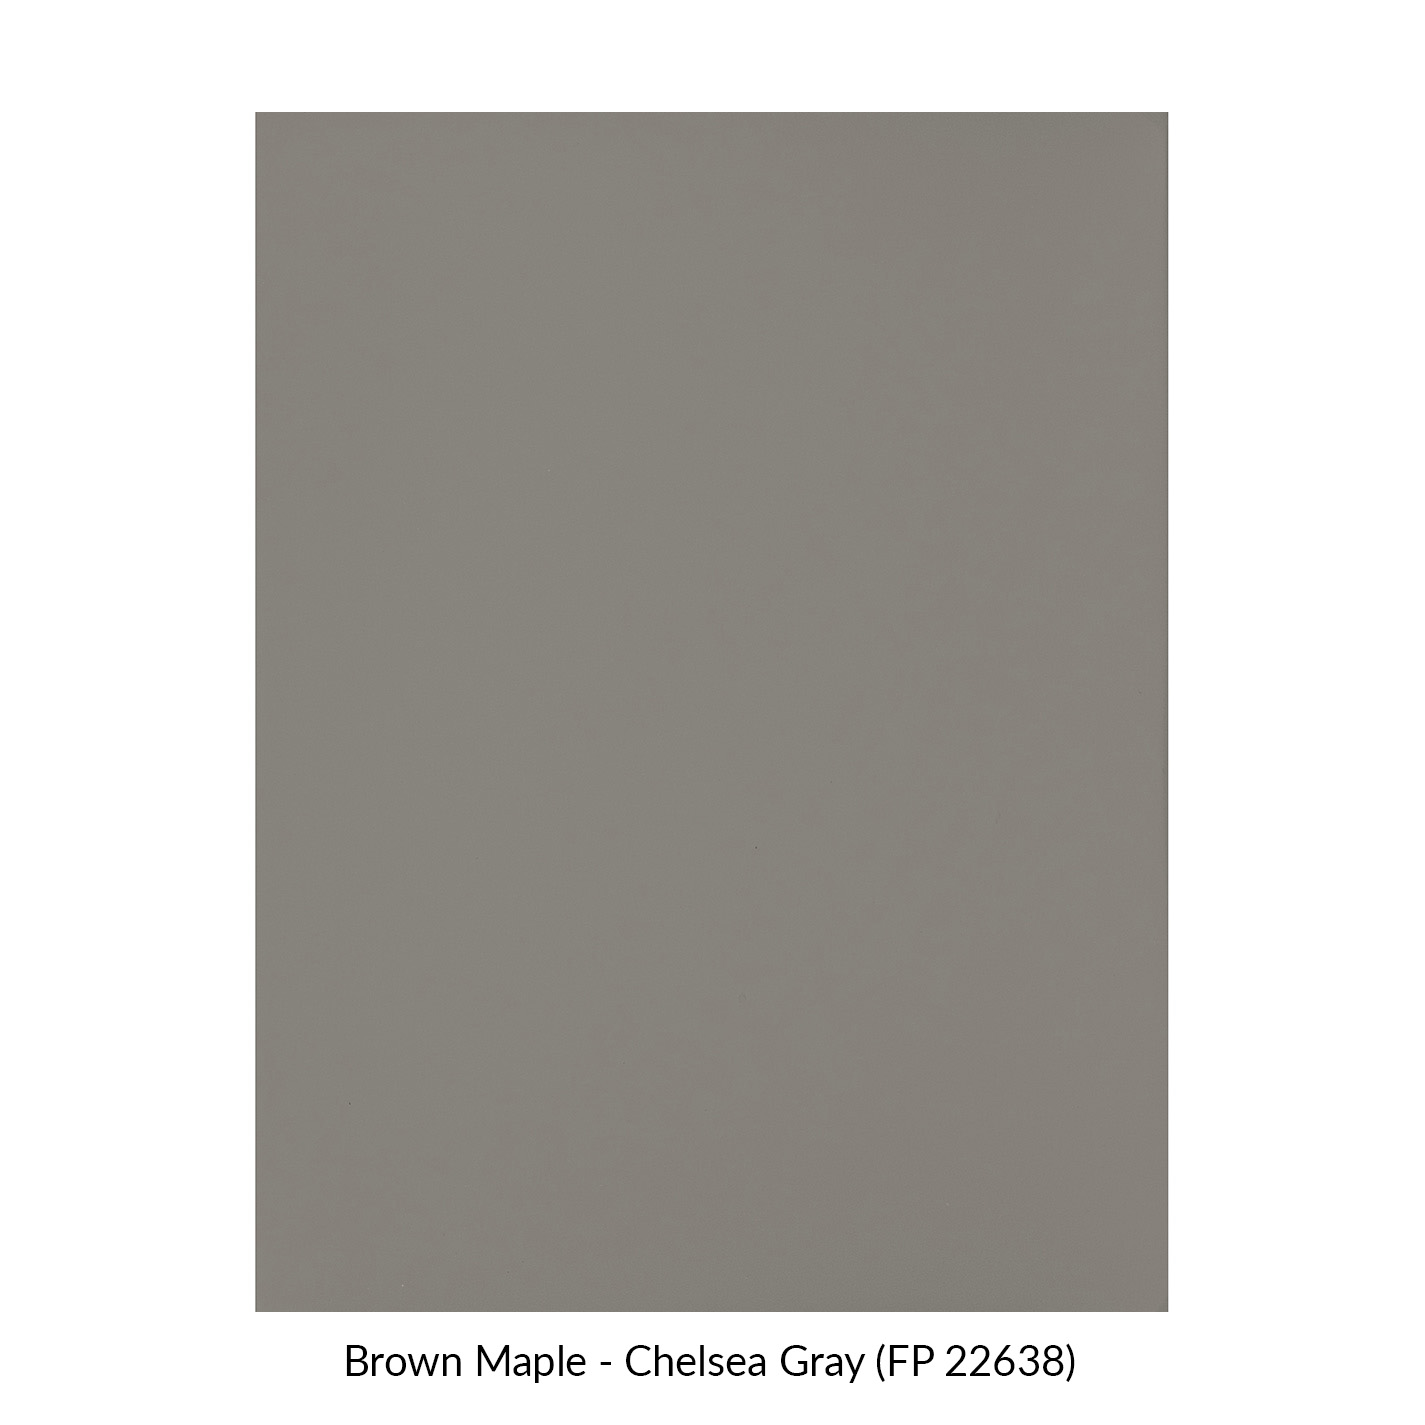 spectrum-brown-maple-chelsea-grey-fp-22638.jpg